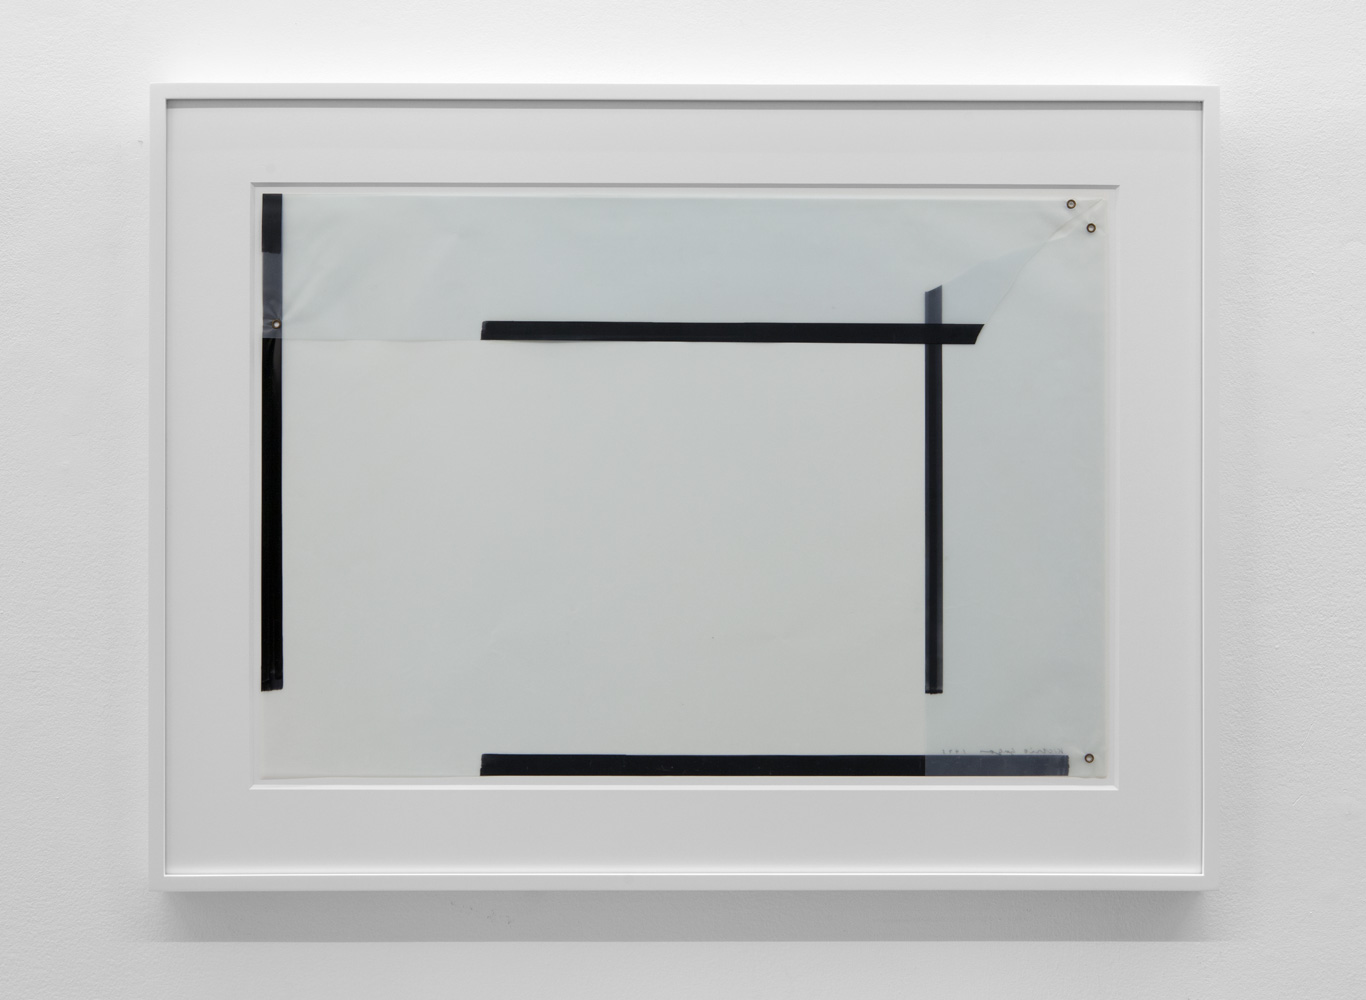 Untitled , 1974 Magic marker and metal on acetate 18 5/8 x 27 1/4 inches  47.3 x 69.2 cm